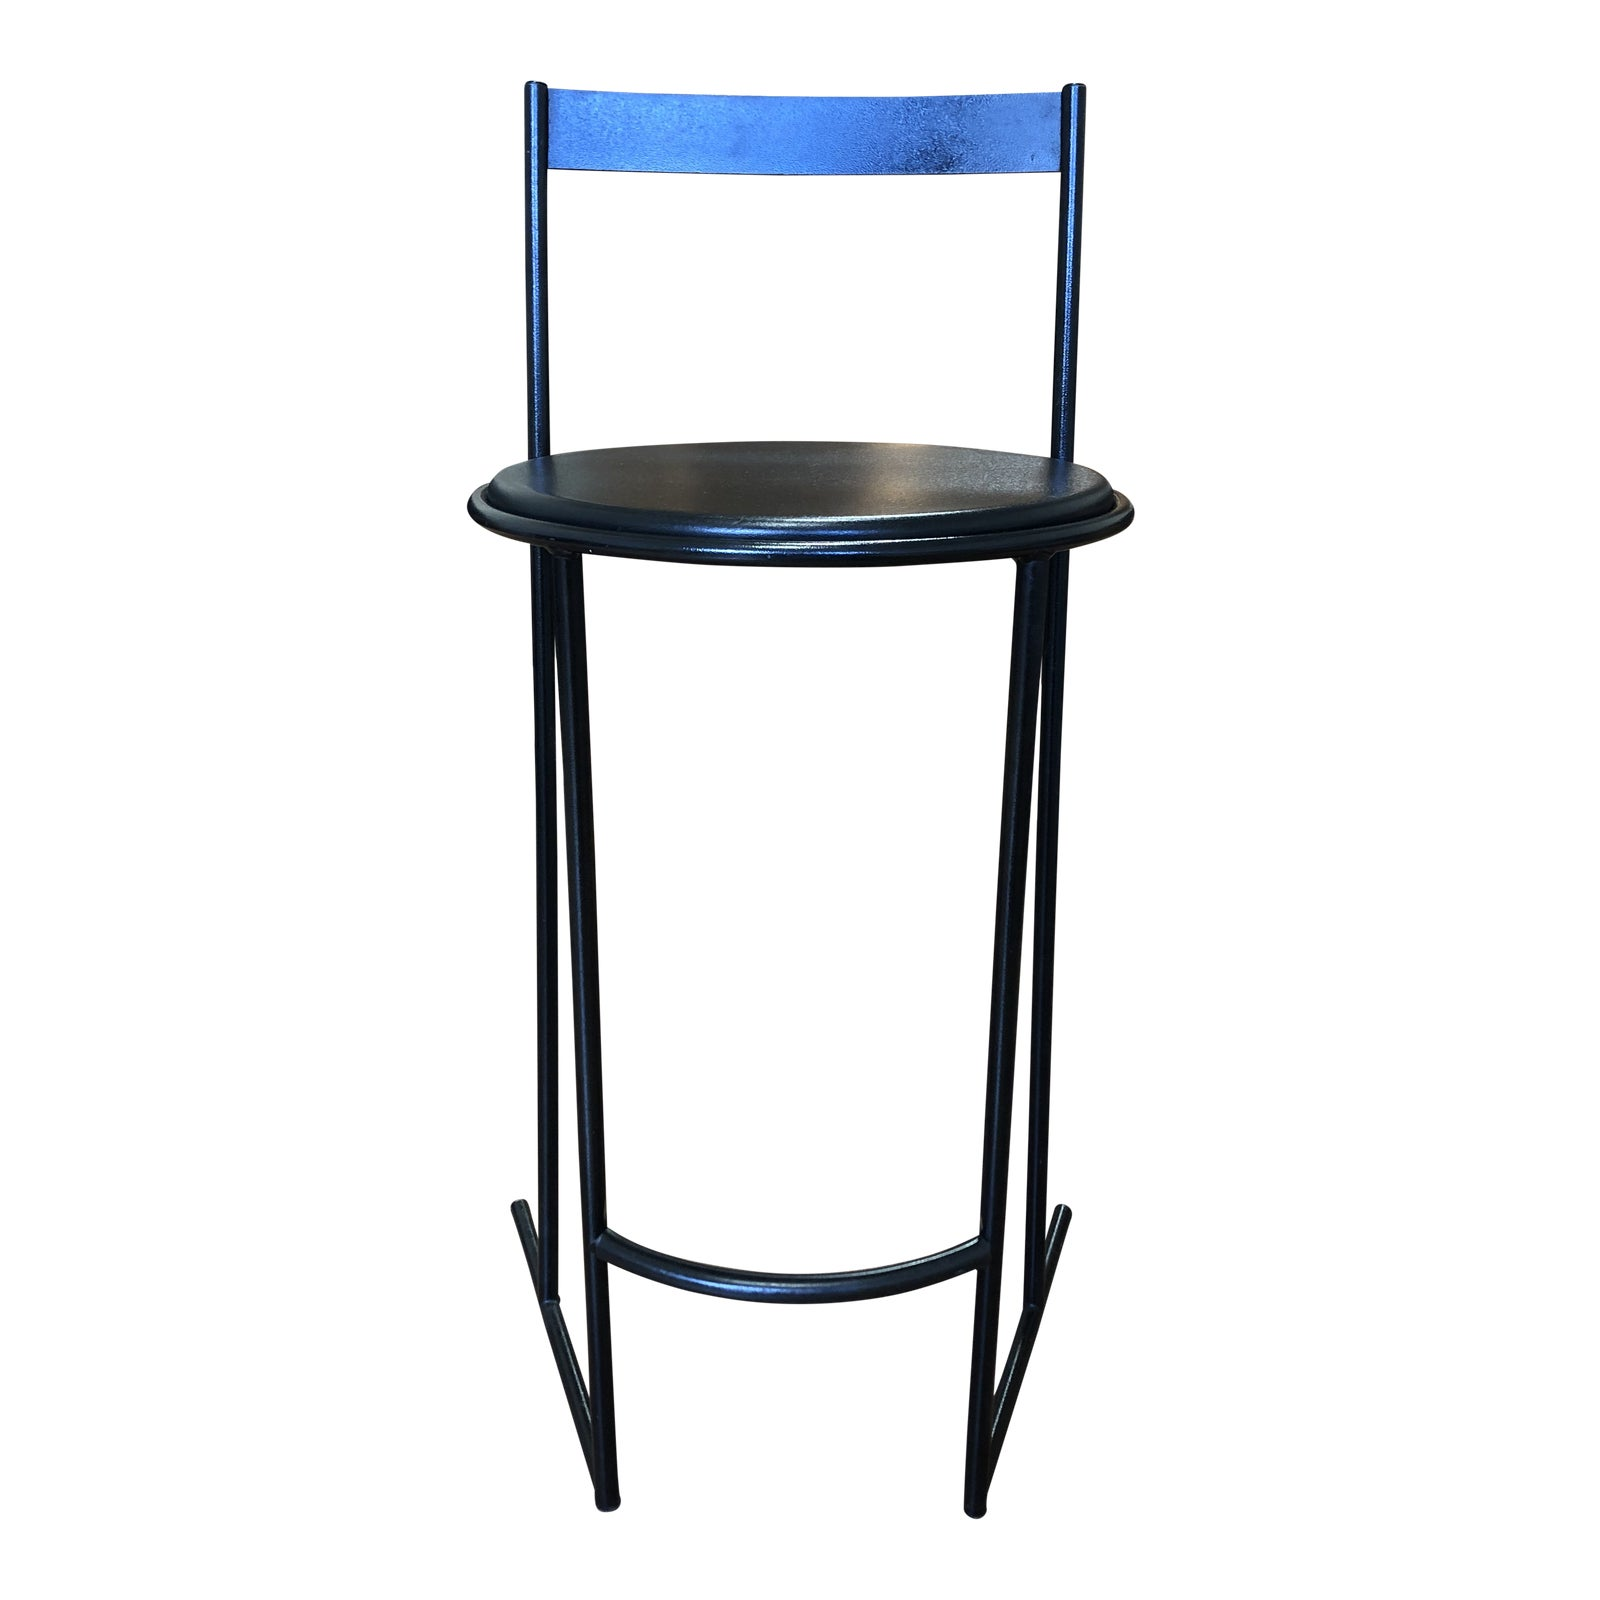 Amazing Flyline Carre Vi Italian Leather Counter Stool Camellatalisay Diy Chair Ideas Camellatalisaycom